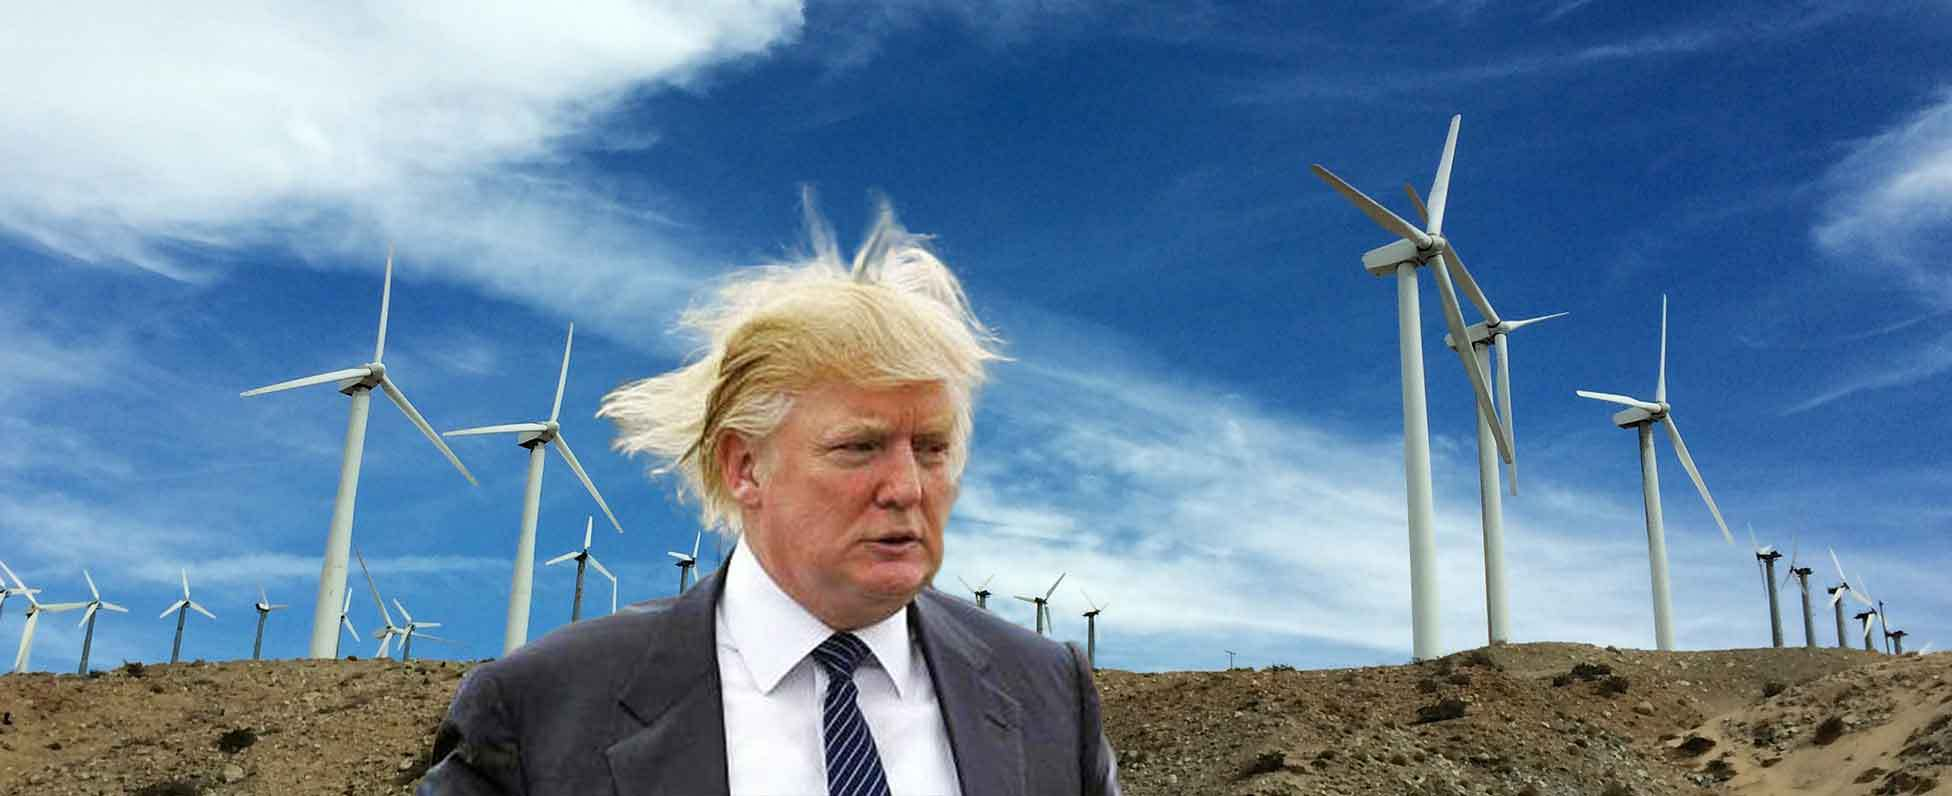 Trump Renewable Energy